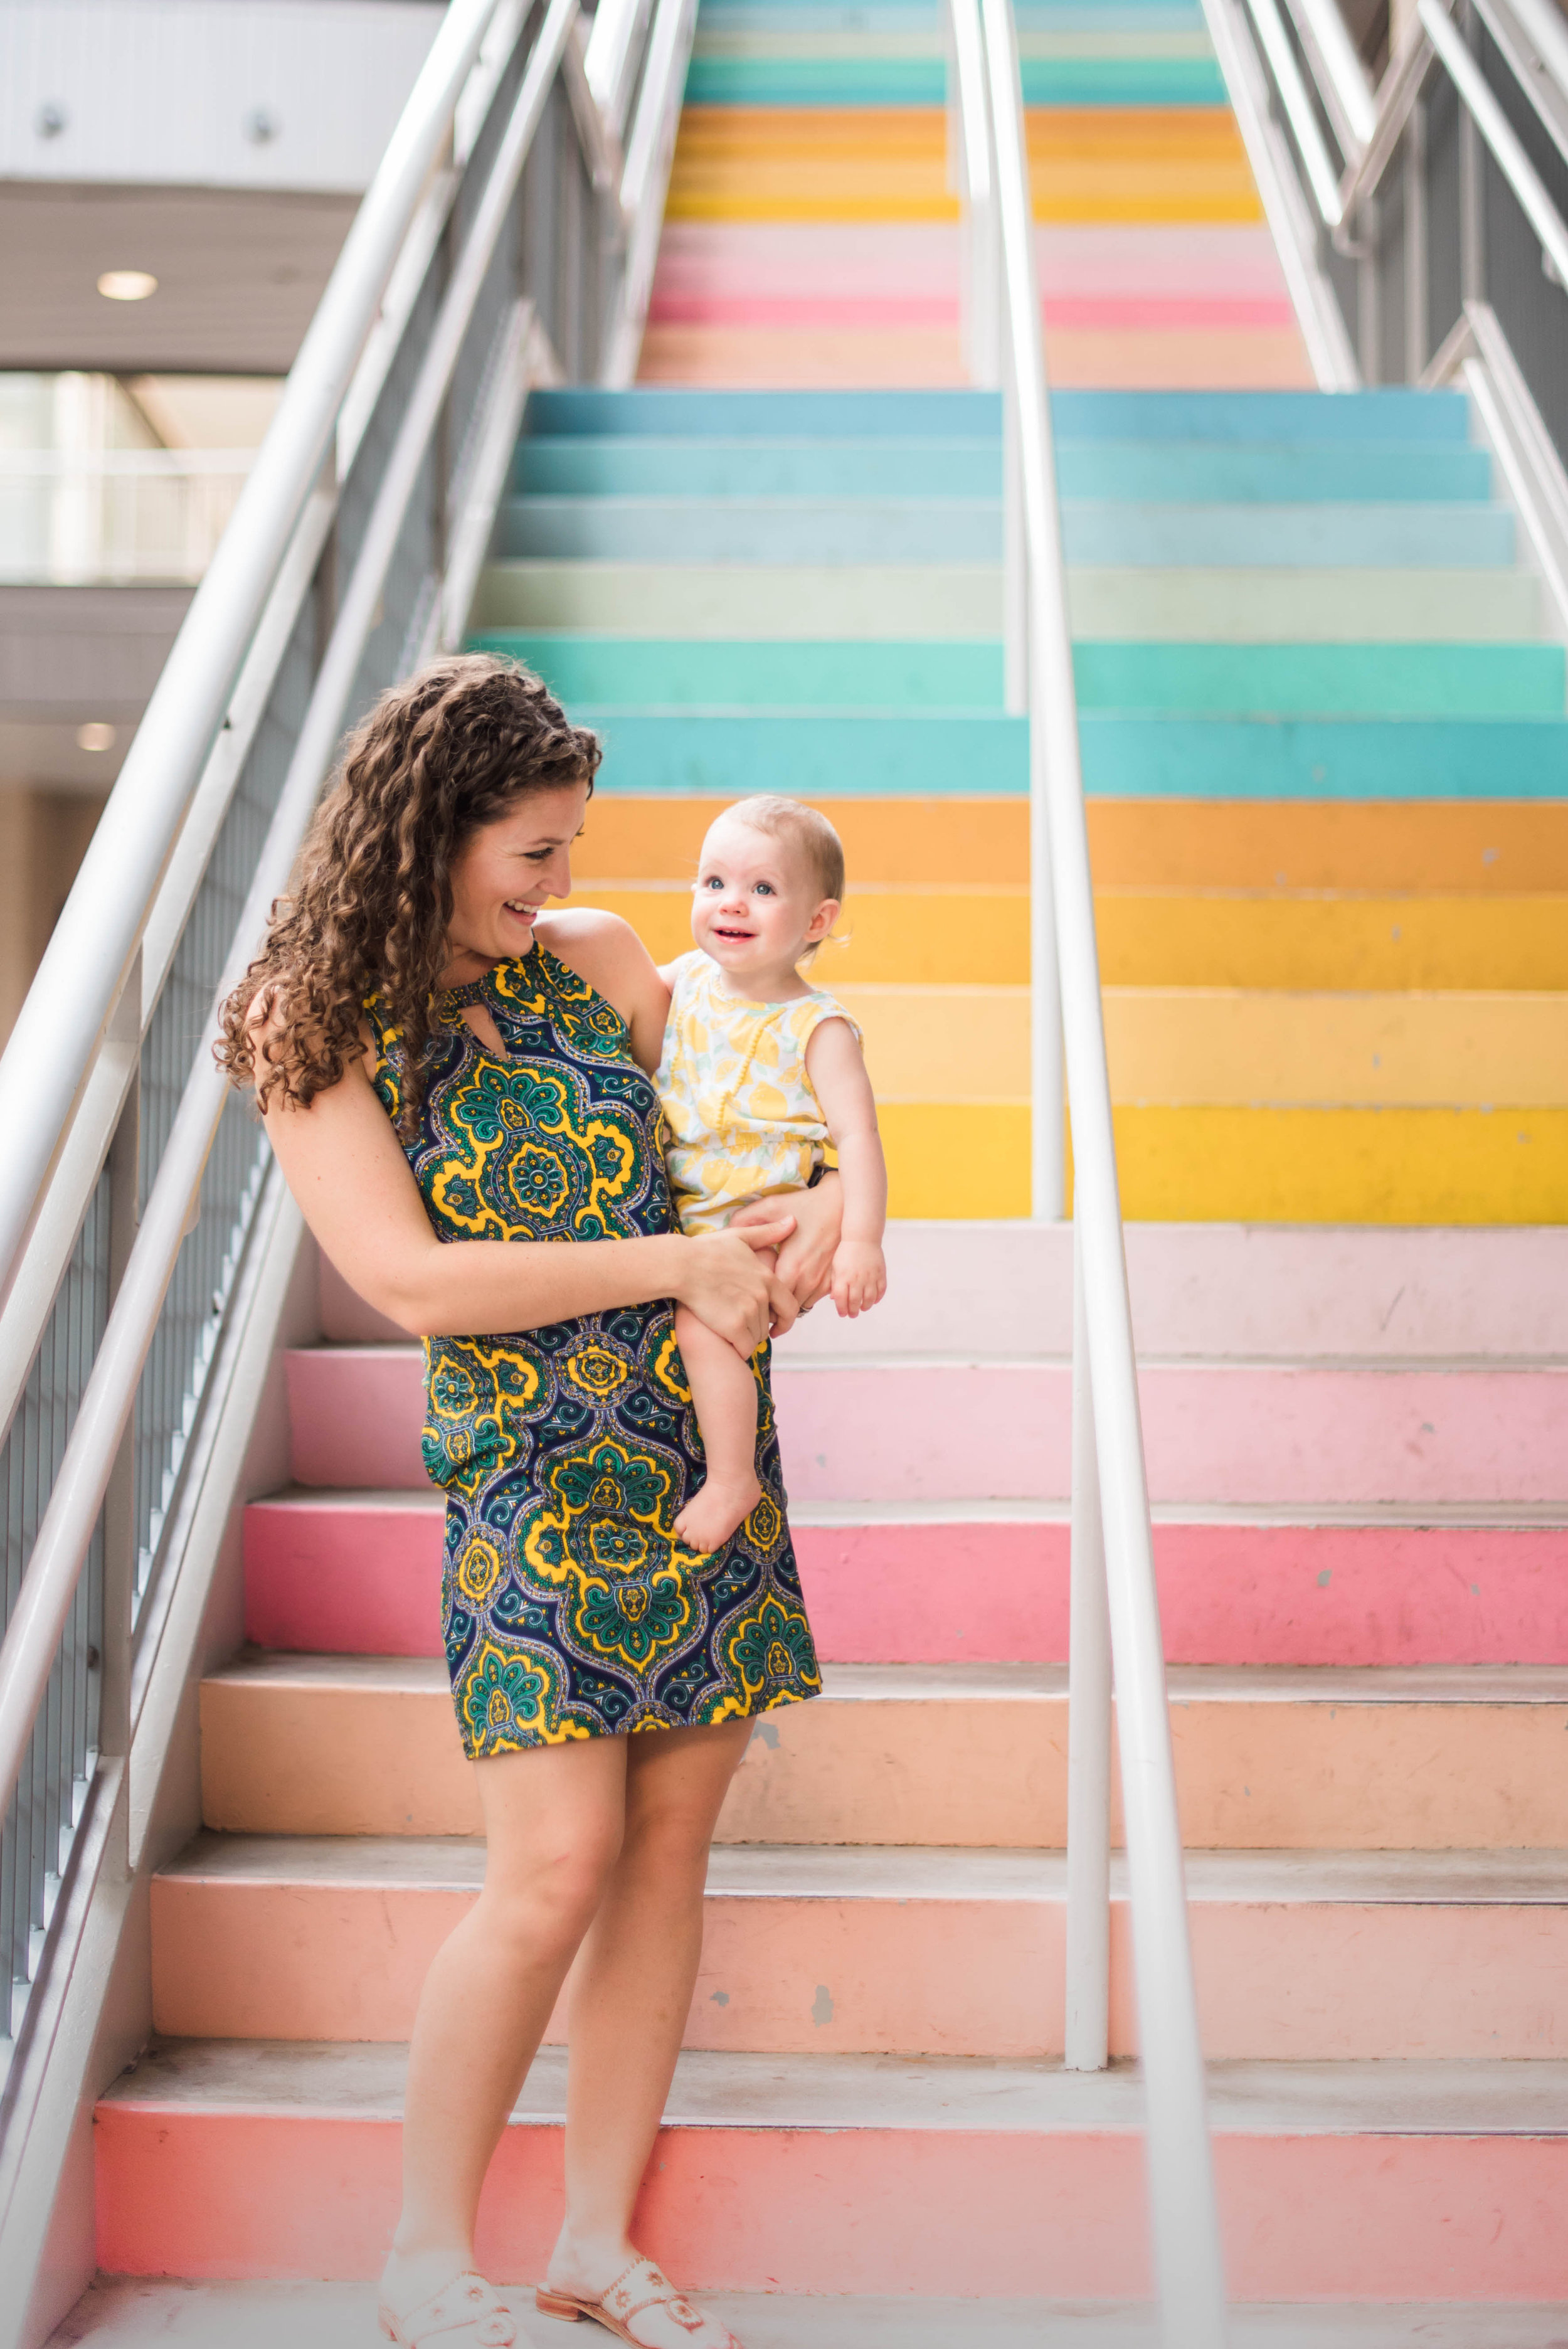 Charlotte and I at the Sugar Cloth Wall. Photo taken by SydneyArmesPhotography